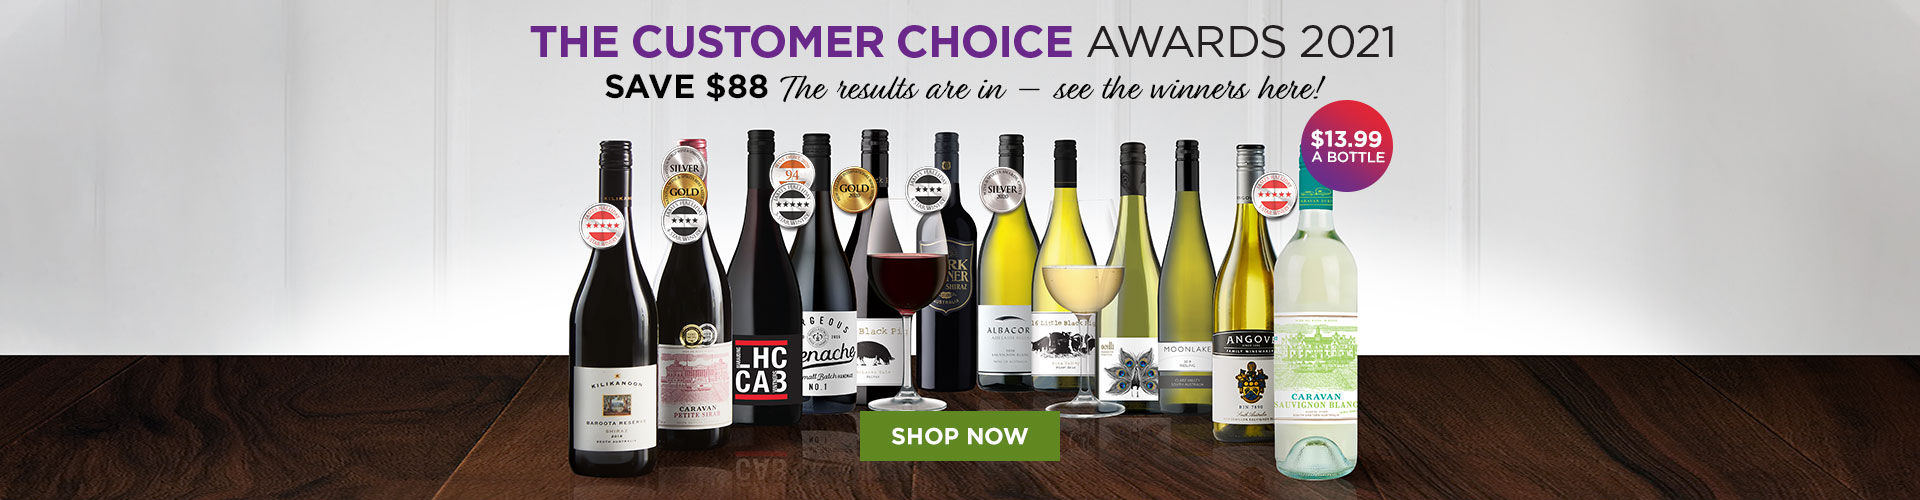 Customer Choice Awards